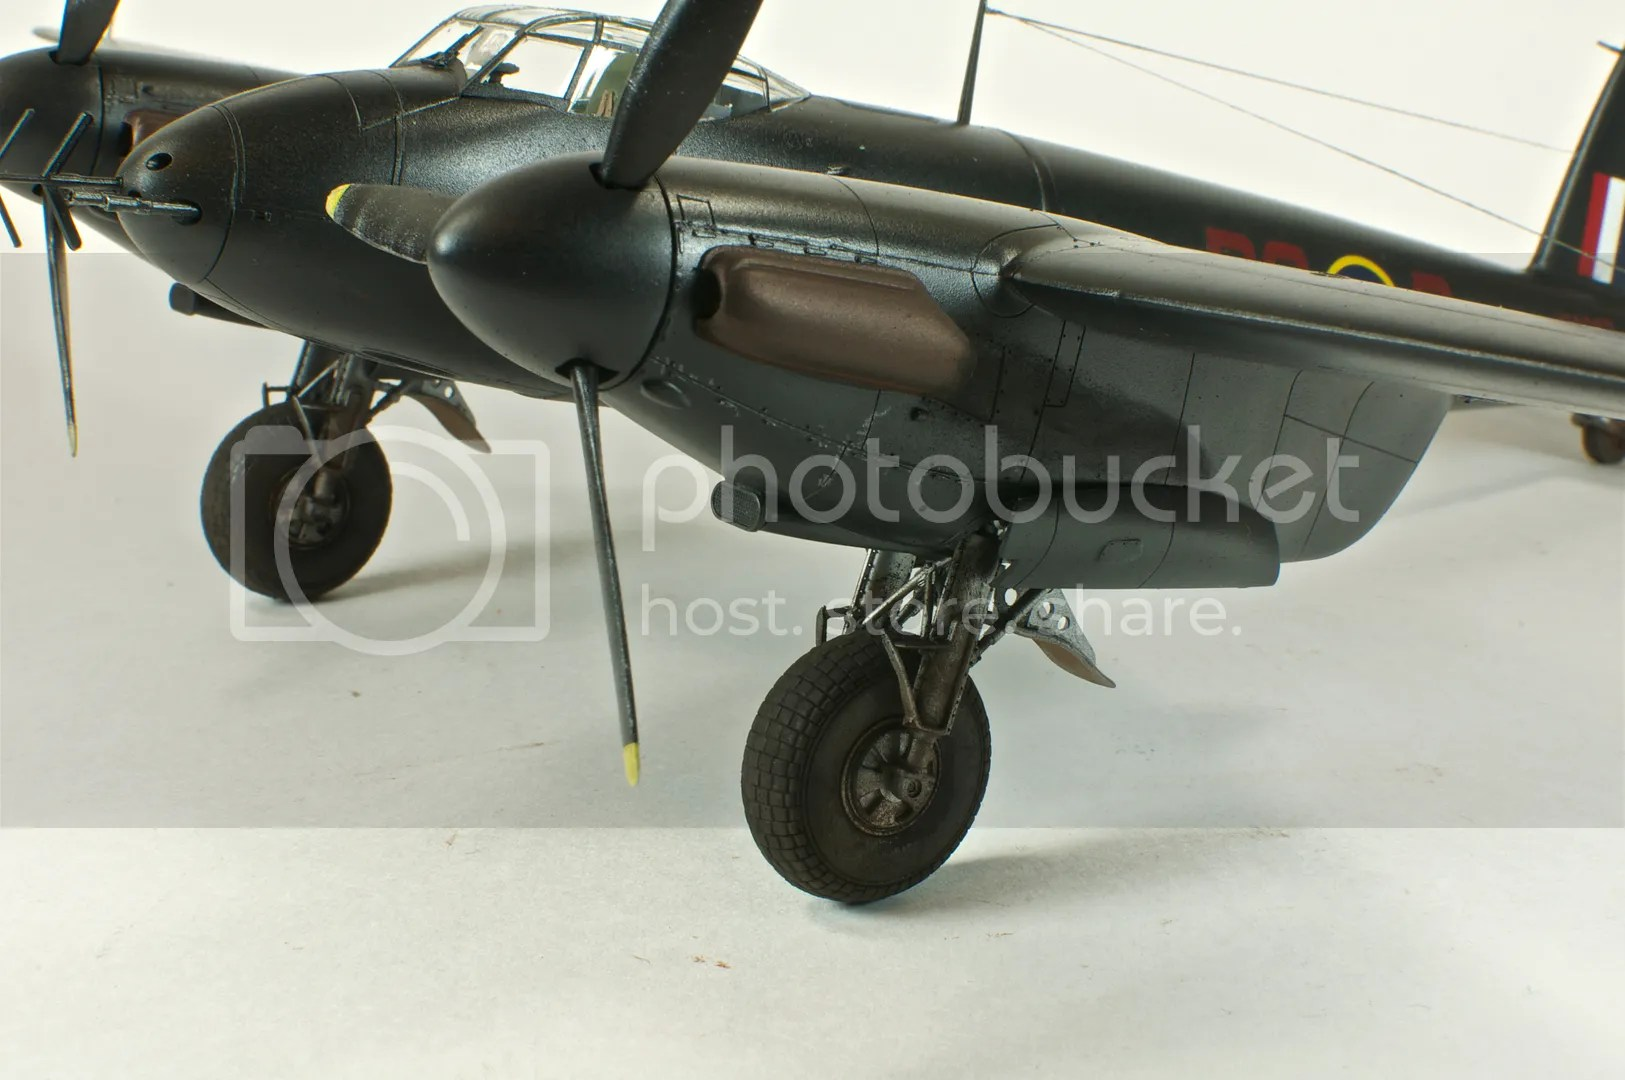 March,Mosquito NFII,1/48,scale models,Nikon D300s,2011,Tamiya